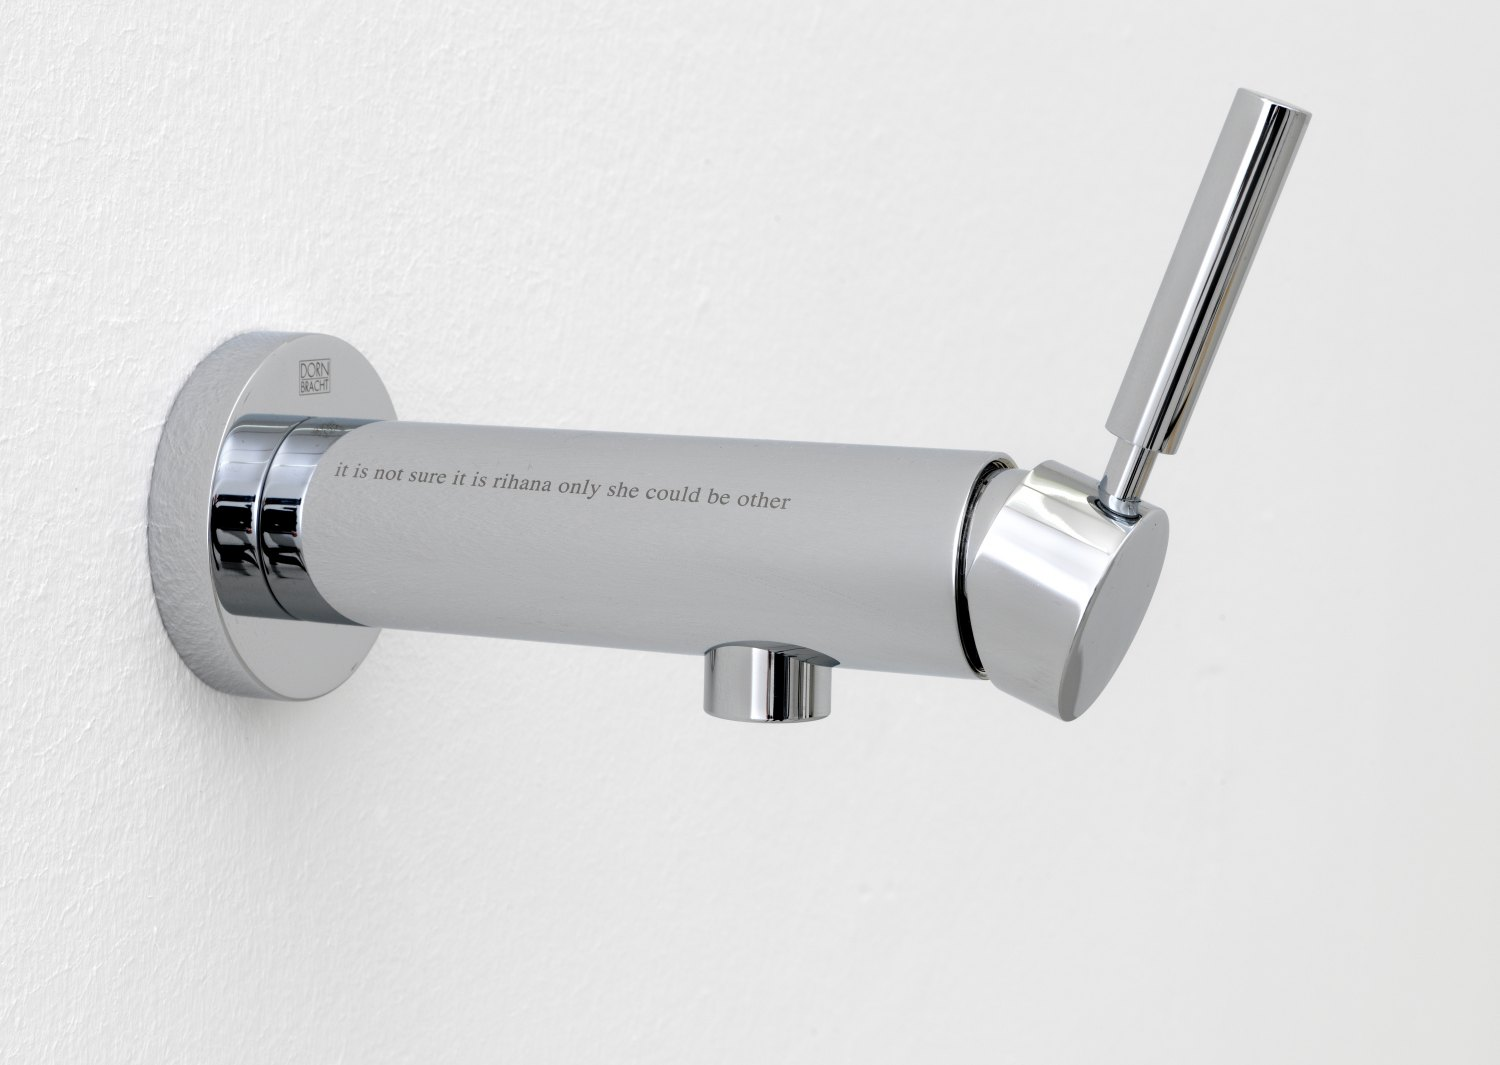 Bernadette Corporation only she could be other, 2010 Dornbracht TARA.LOGIC wall-mounted single-lever basin mixer with 1 sandblast etching and 1 hand engraving, 13 × 8 × 23 cm